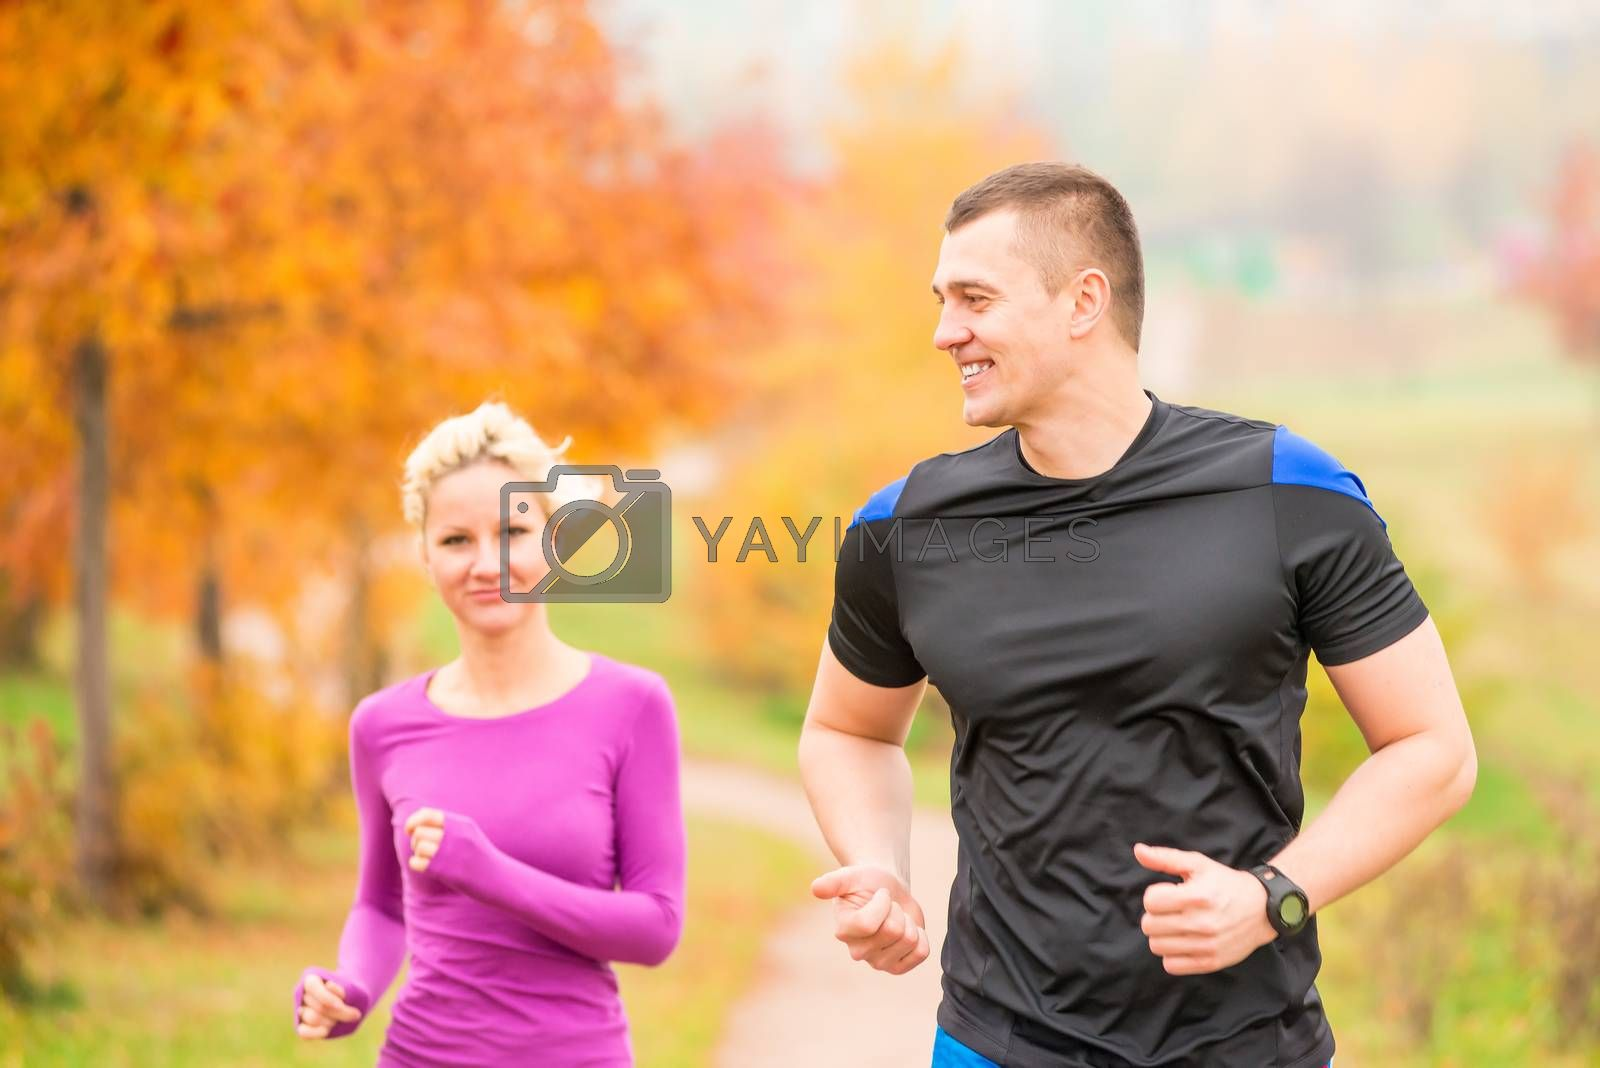 healthy lifestyle - jogging. a man and a woman running in the mo by Labunskiy K.